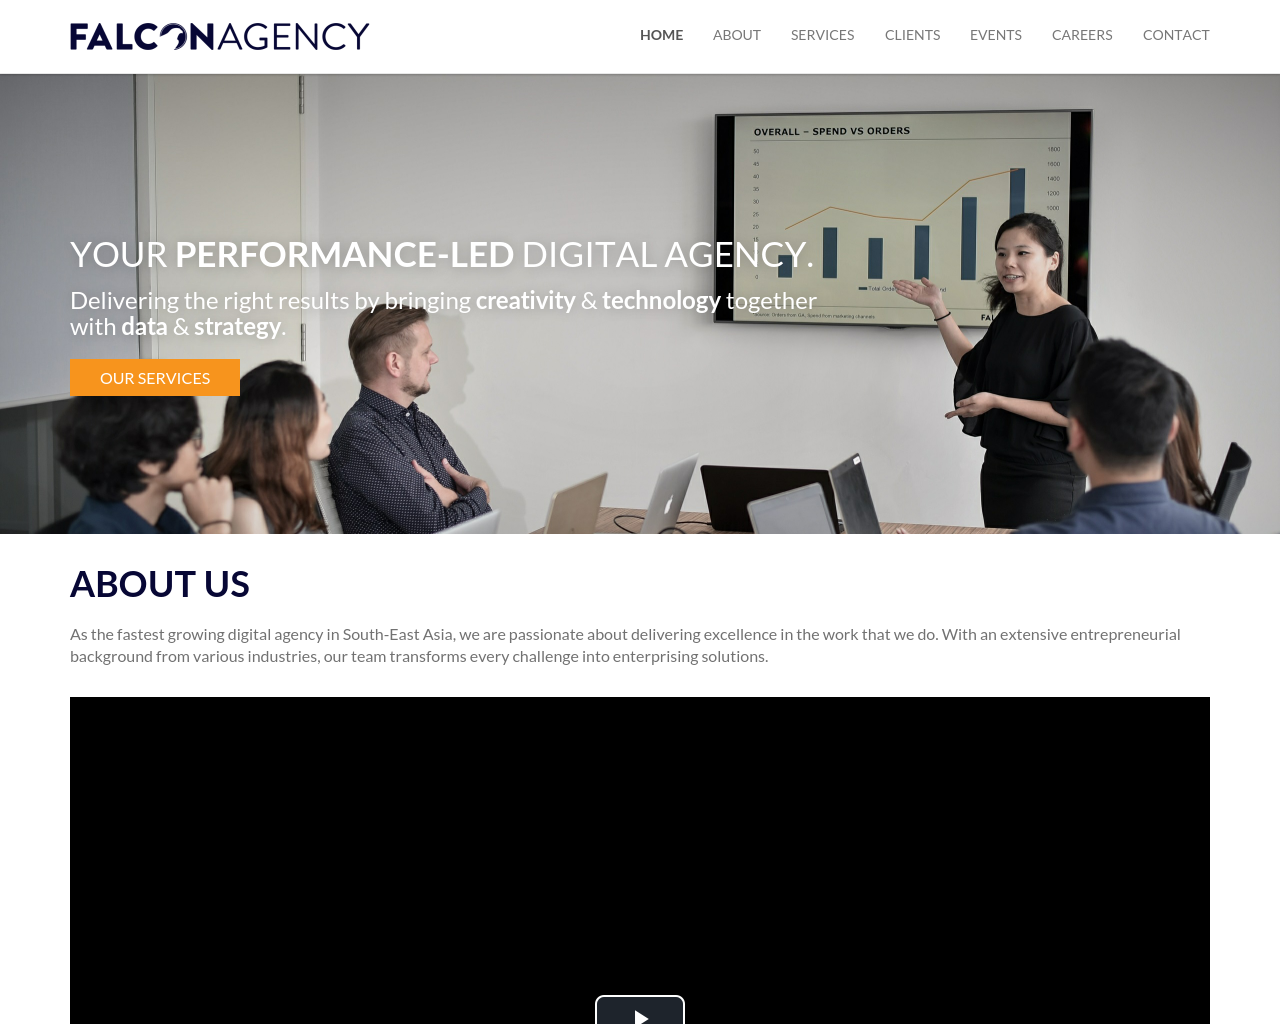 Falcon-Agency-Advertising-Reviews-Pricing